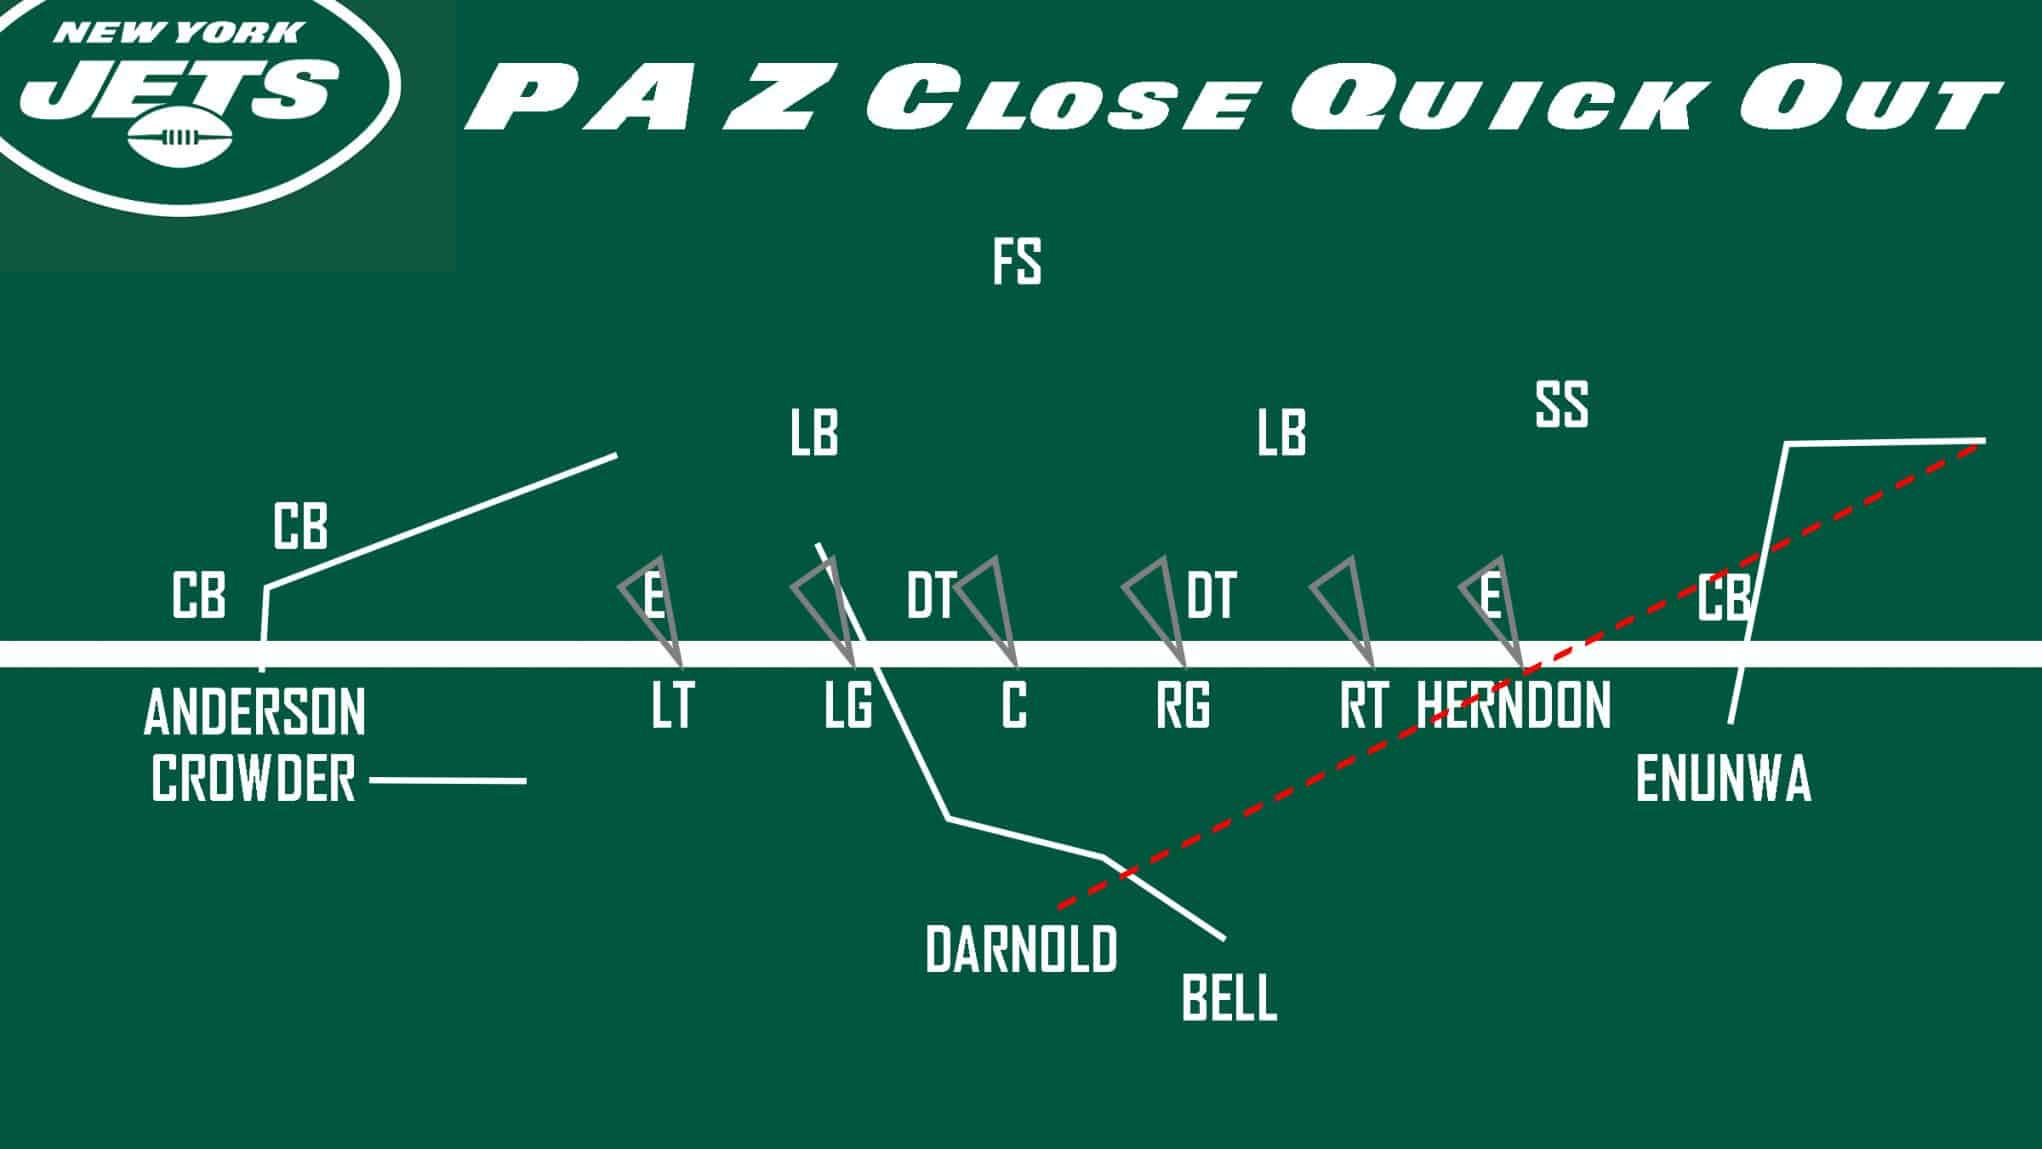 Jets PA Z Close Quick Out